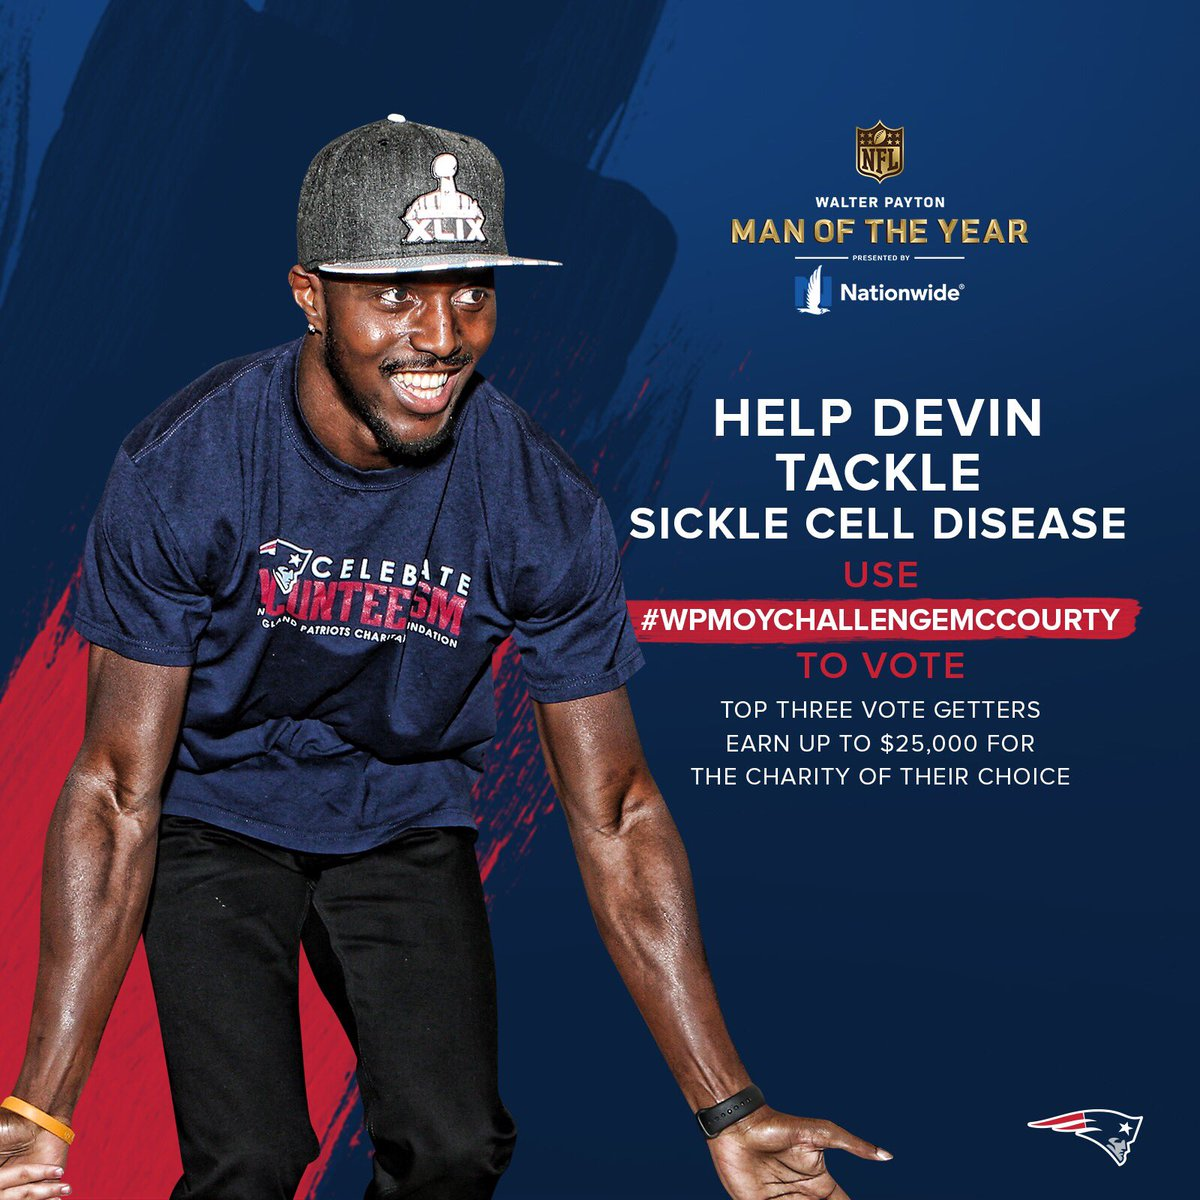 My man D-Mac is up for the 2018 Walter Payton Man of the Year. He is the perfect example of how to use influence to positively influence the community. Repost and share the hashtag #WPMOYCHALLENGEMCCOURTY to help him raise money to fight sickle cell disease. <br>http://pic.twitter.com/qyU3mrKhdH